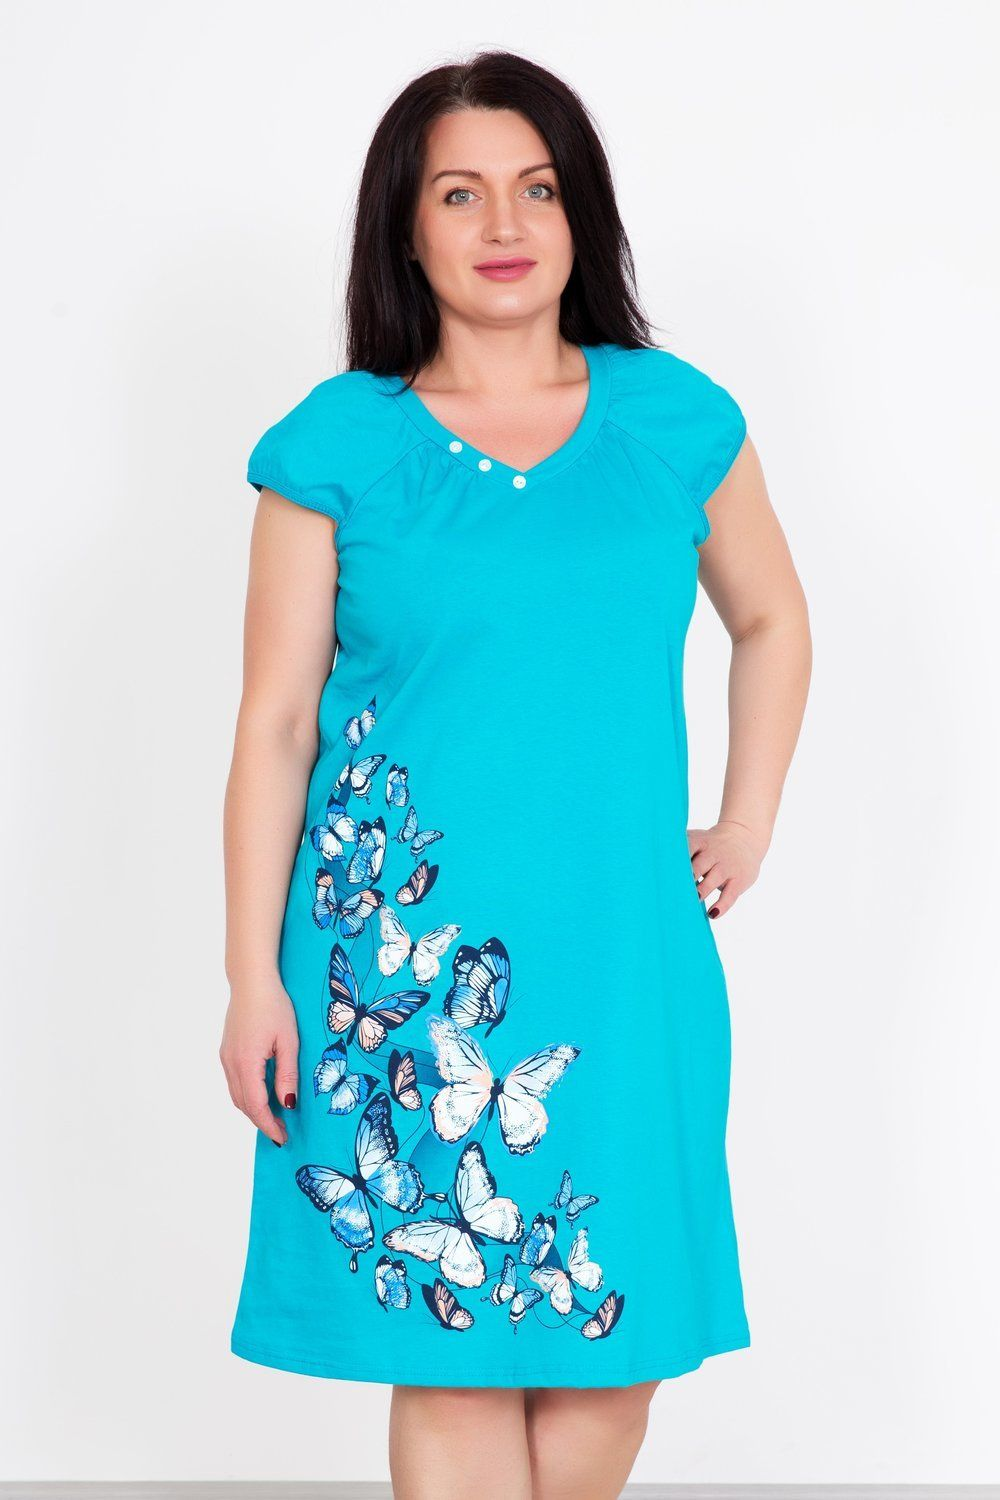 Lika Dress / Nightgown Poljot B Art. 5015